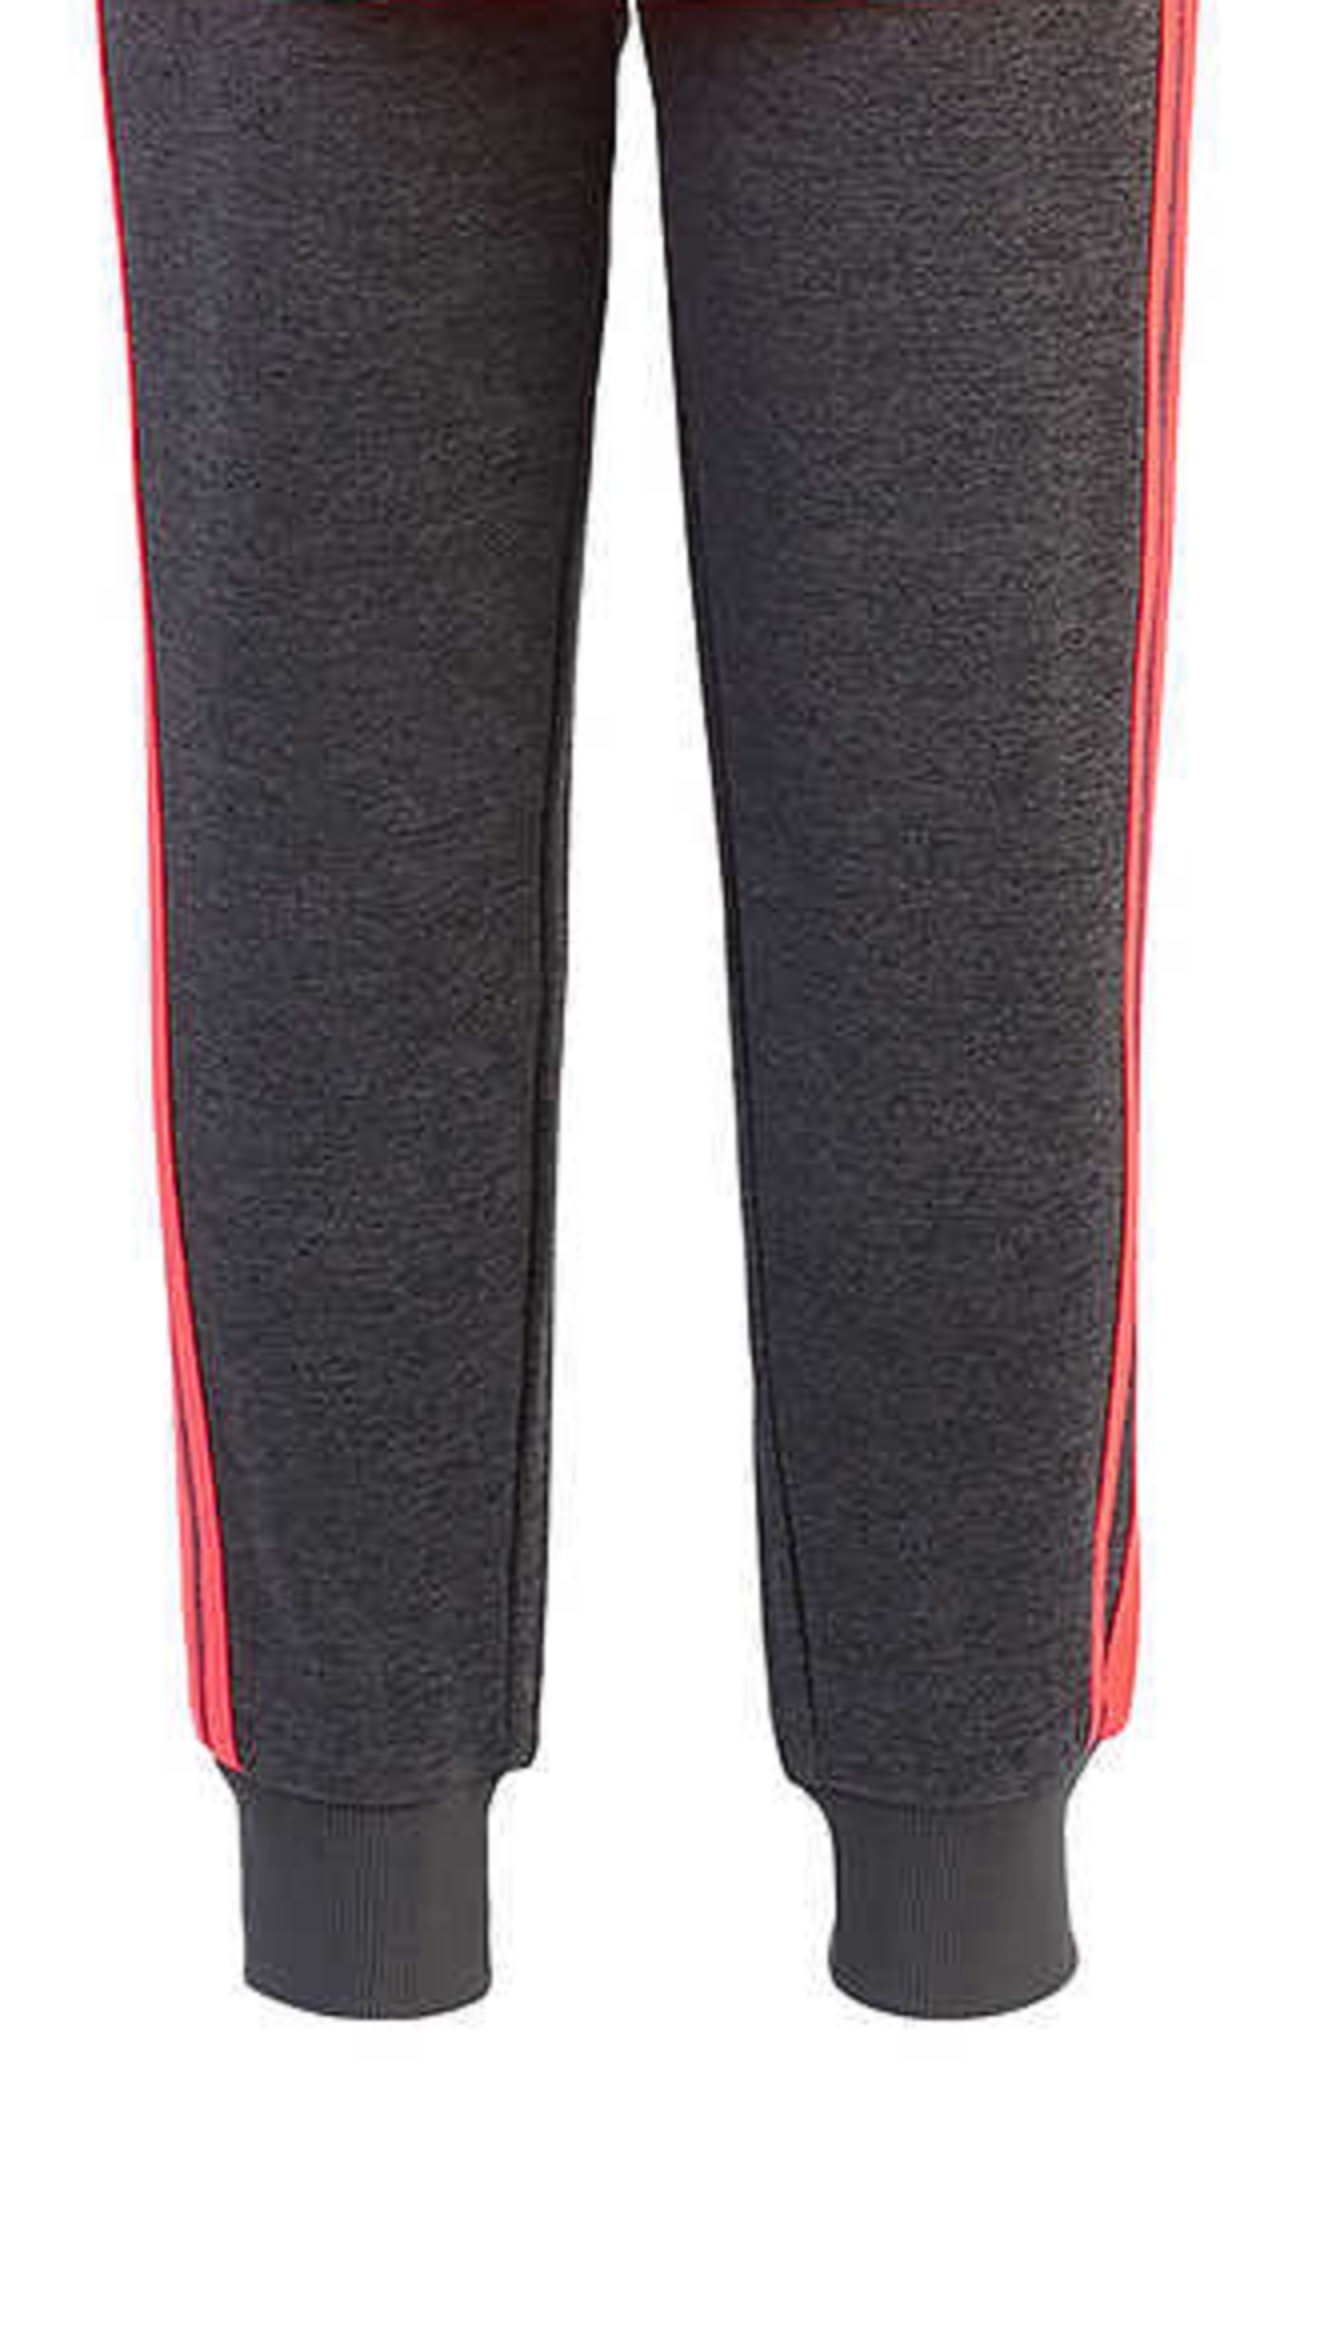 adidas Girls' Tricot Hoodie Jacket and Pant Set (4T, Heather Gray/Neon Pink) by adidas (Image #6)